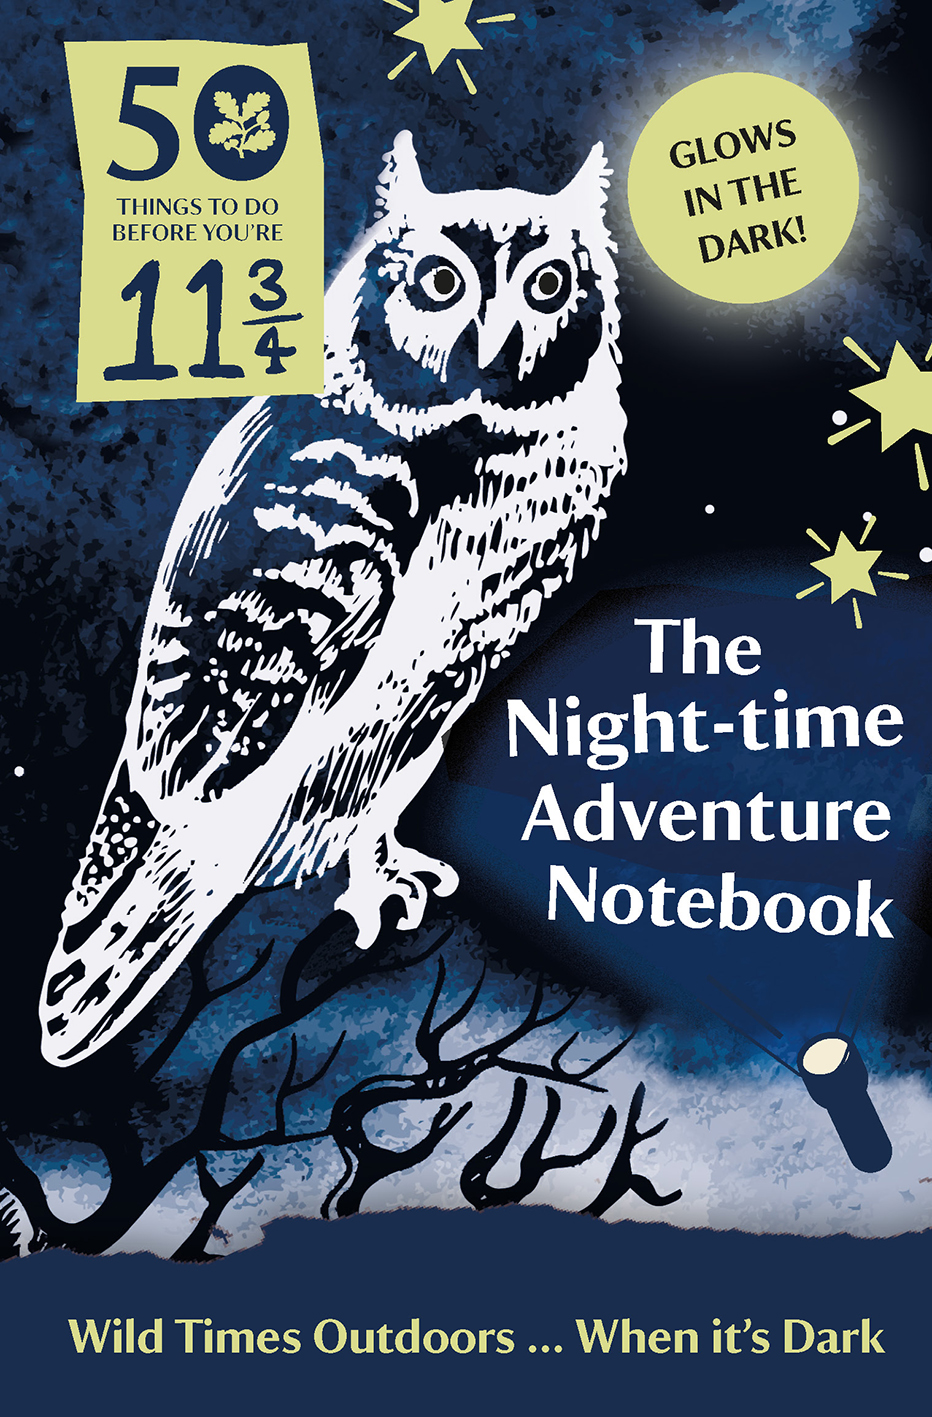 50 Things to Do Before You're 11 ¾: Night-time Adventure Notebook